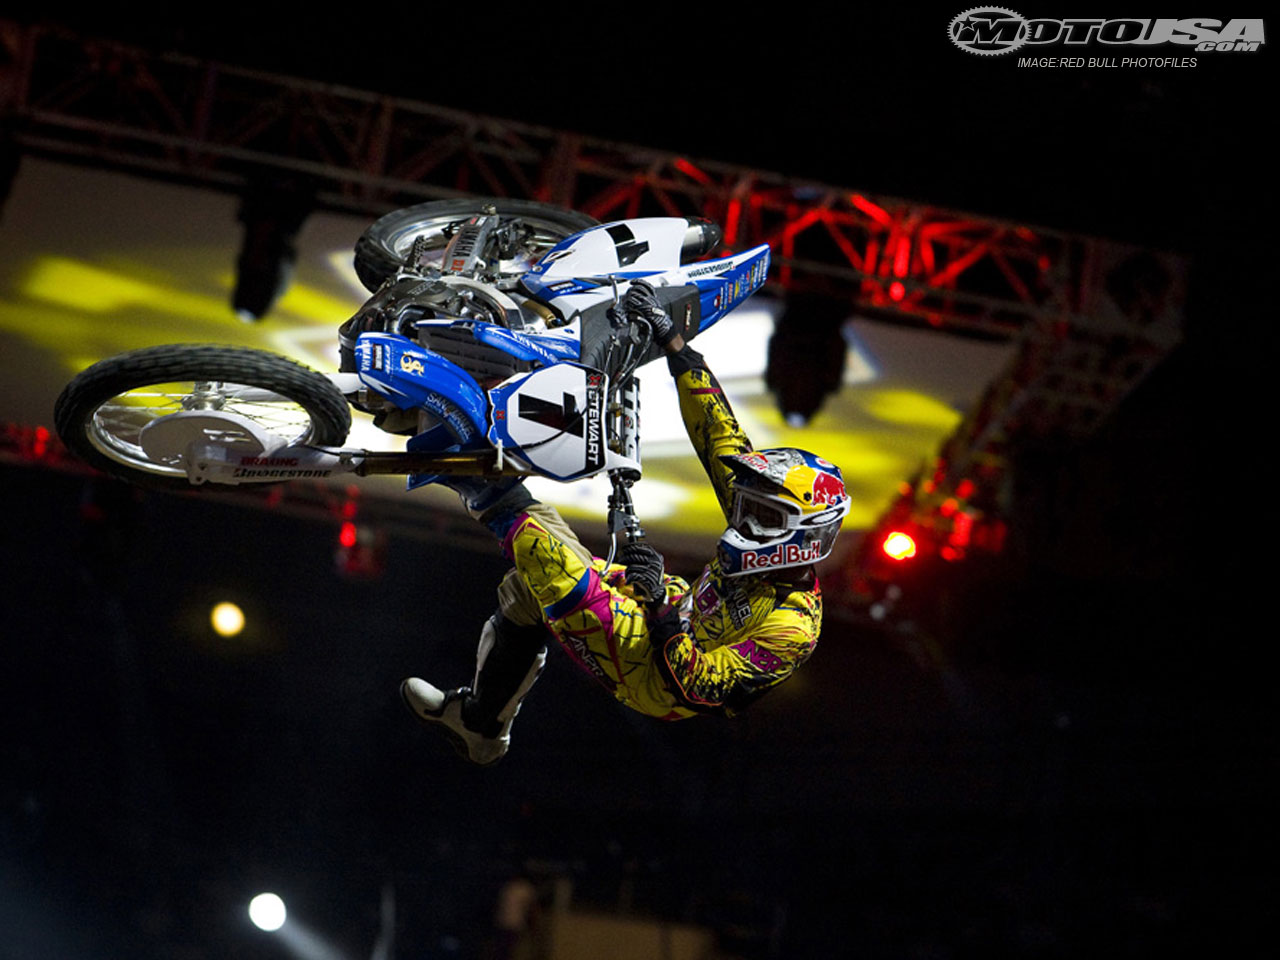 James Stewart had to withdraw from Saturday's X Games events after hurting himself during SuperMoto X qualifying.